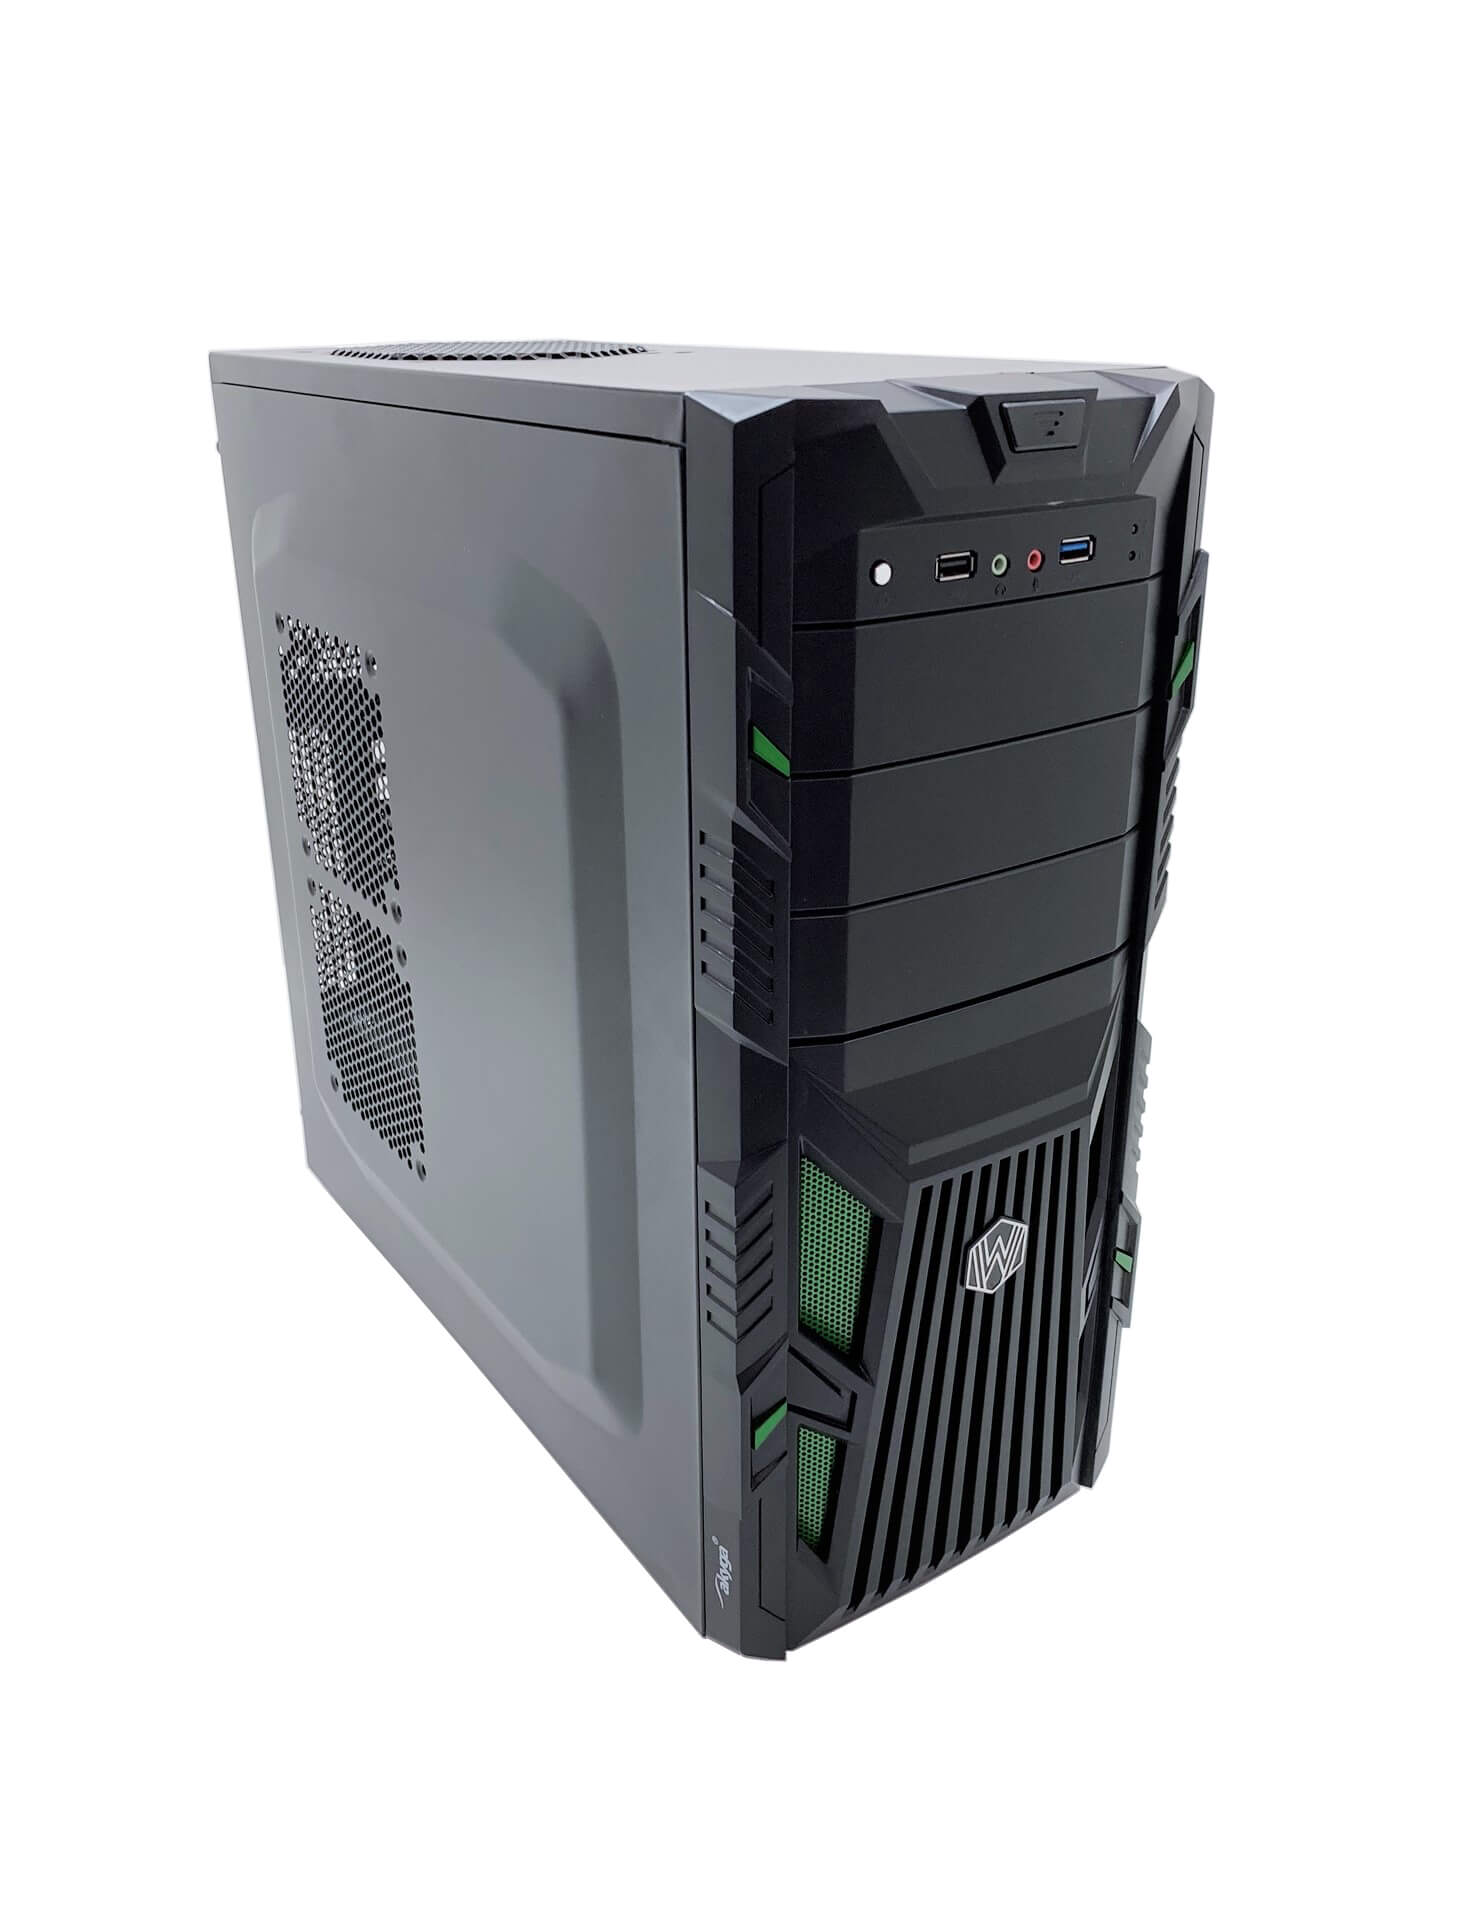 INTEXPC VENOM I3-4150 3.5 / 8192 MB DDR3 / 240 GB SSD NOWY + 500 GB HDD / WINDOWS 10 PRO REF PL / NVIDIA GEFORCE GTX 1050 TI 4GB